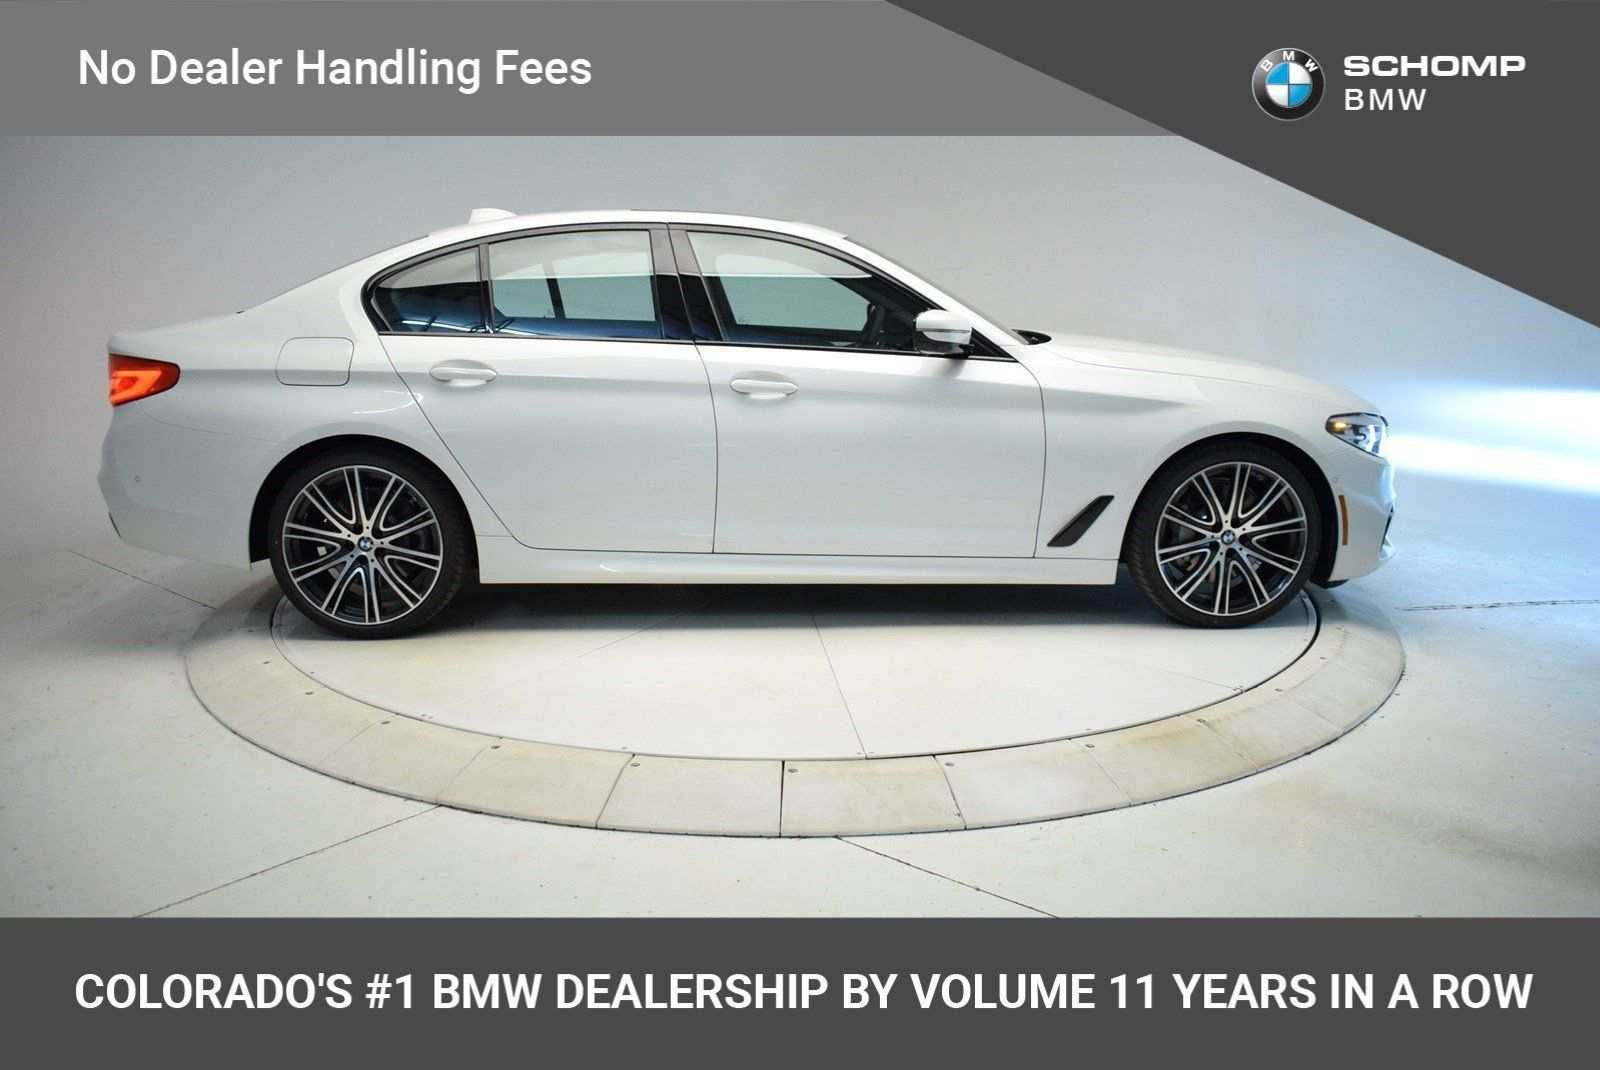 35 Gallery of 2019 Bmw 5500 Hd Exterior with 2019 Bmw 5500 Hd